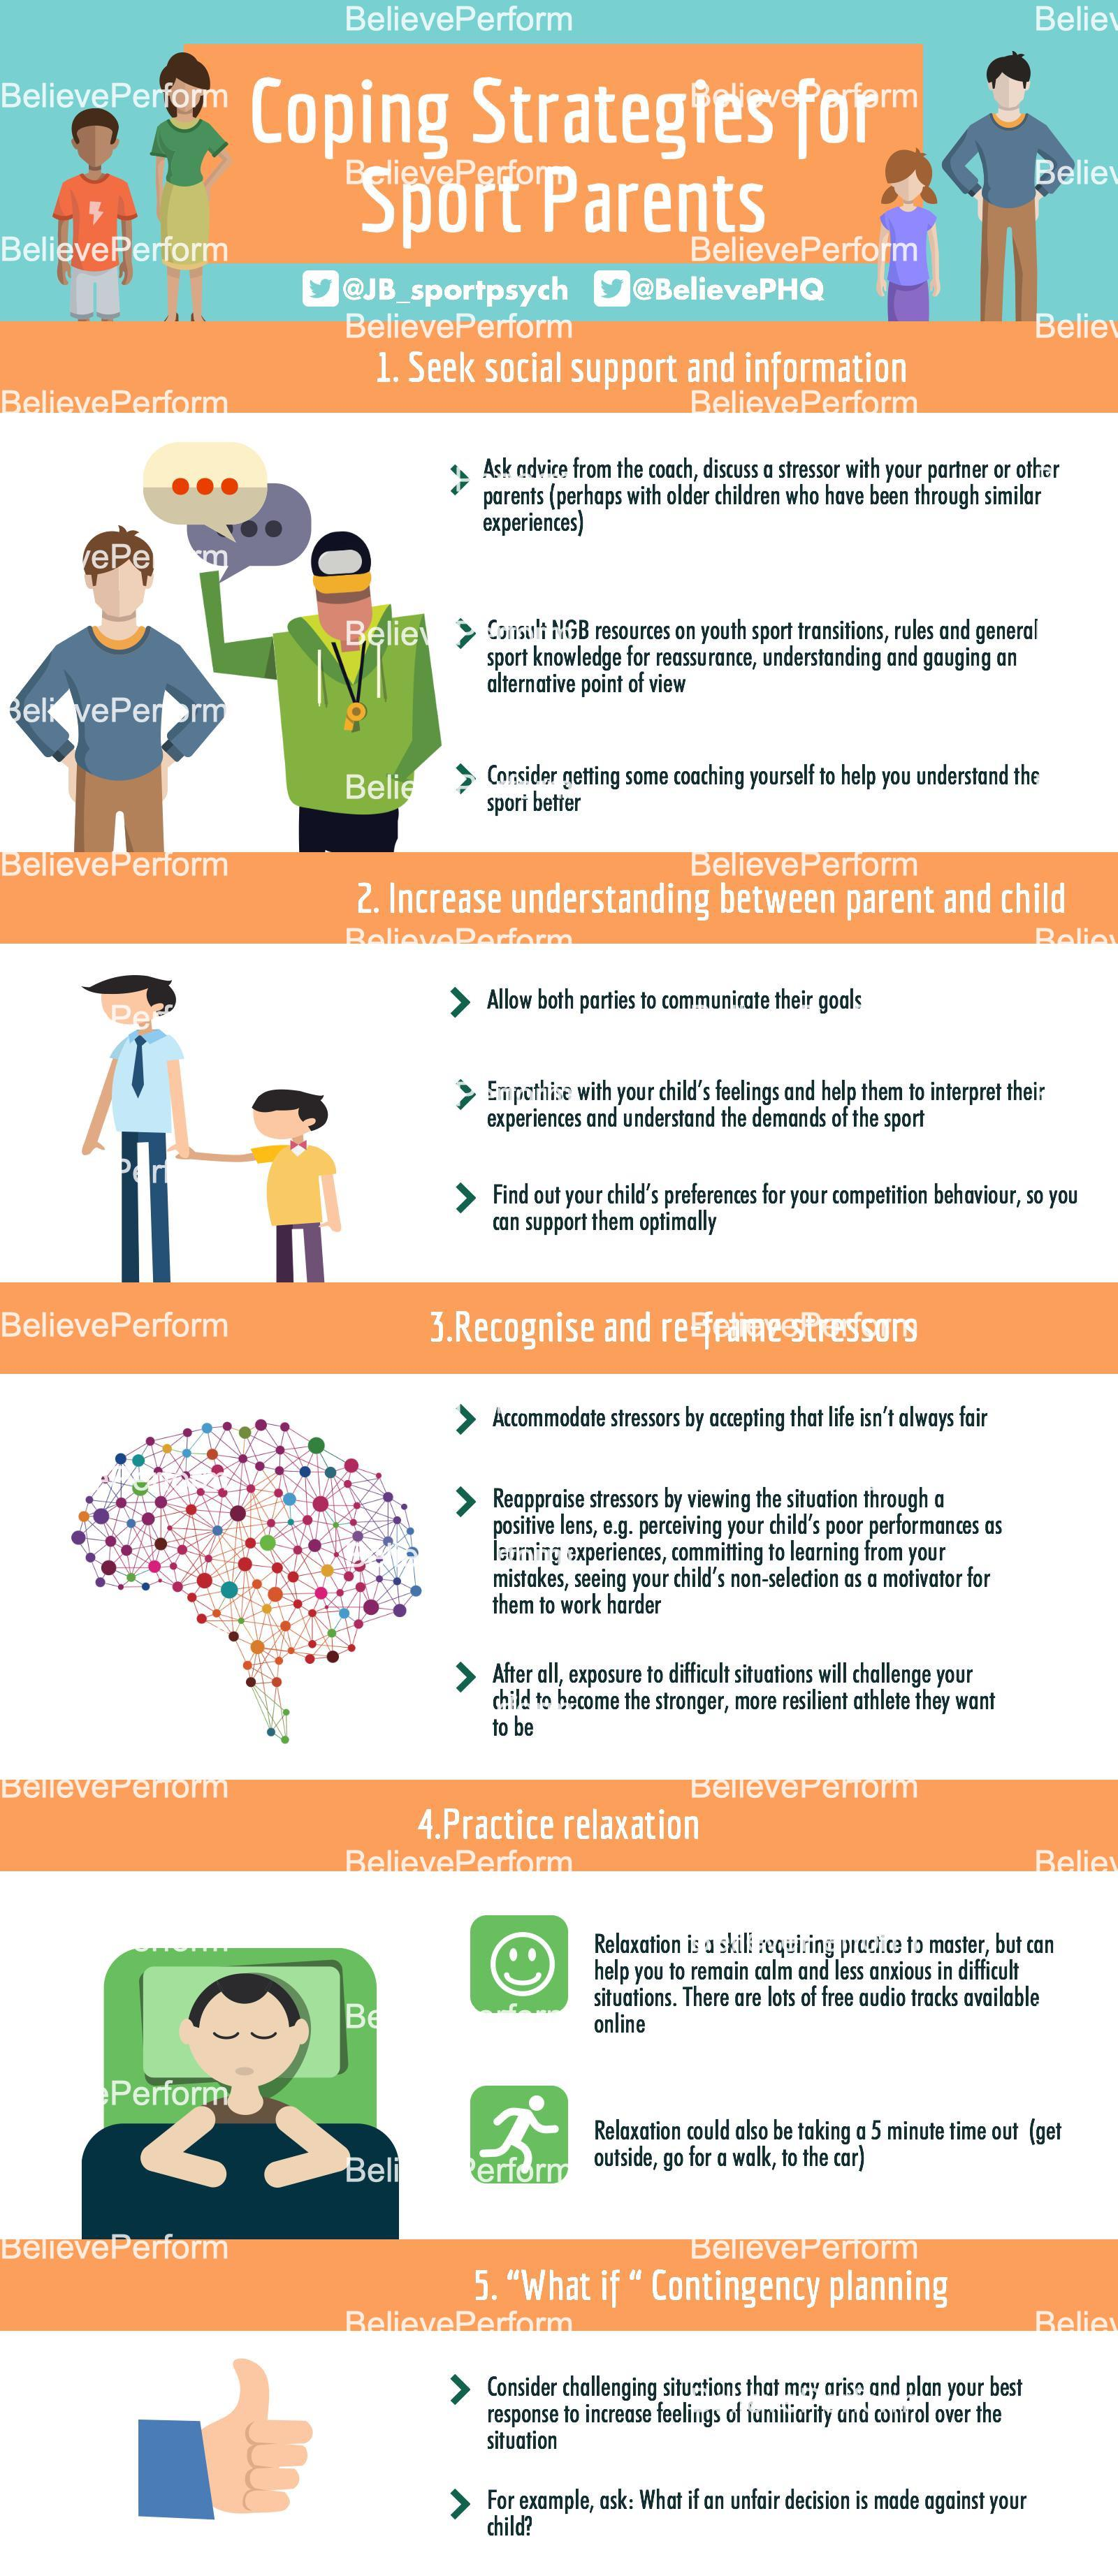 Coping strategies for sport parents